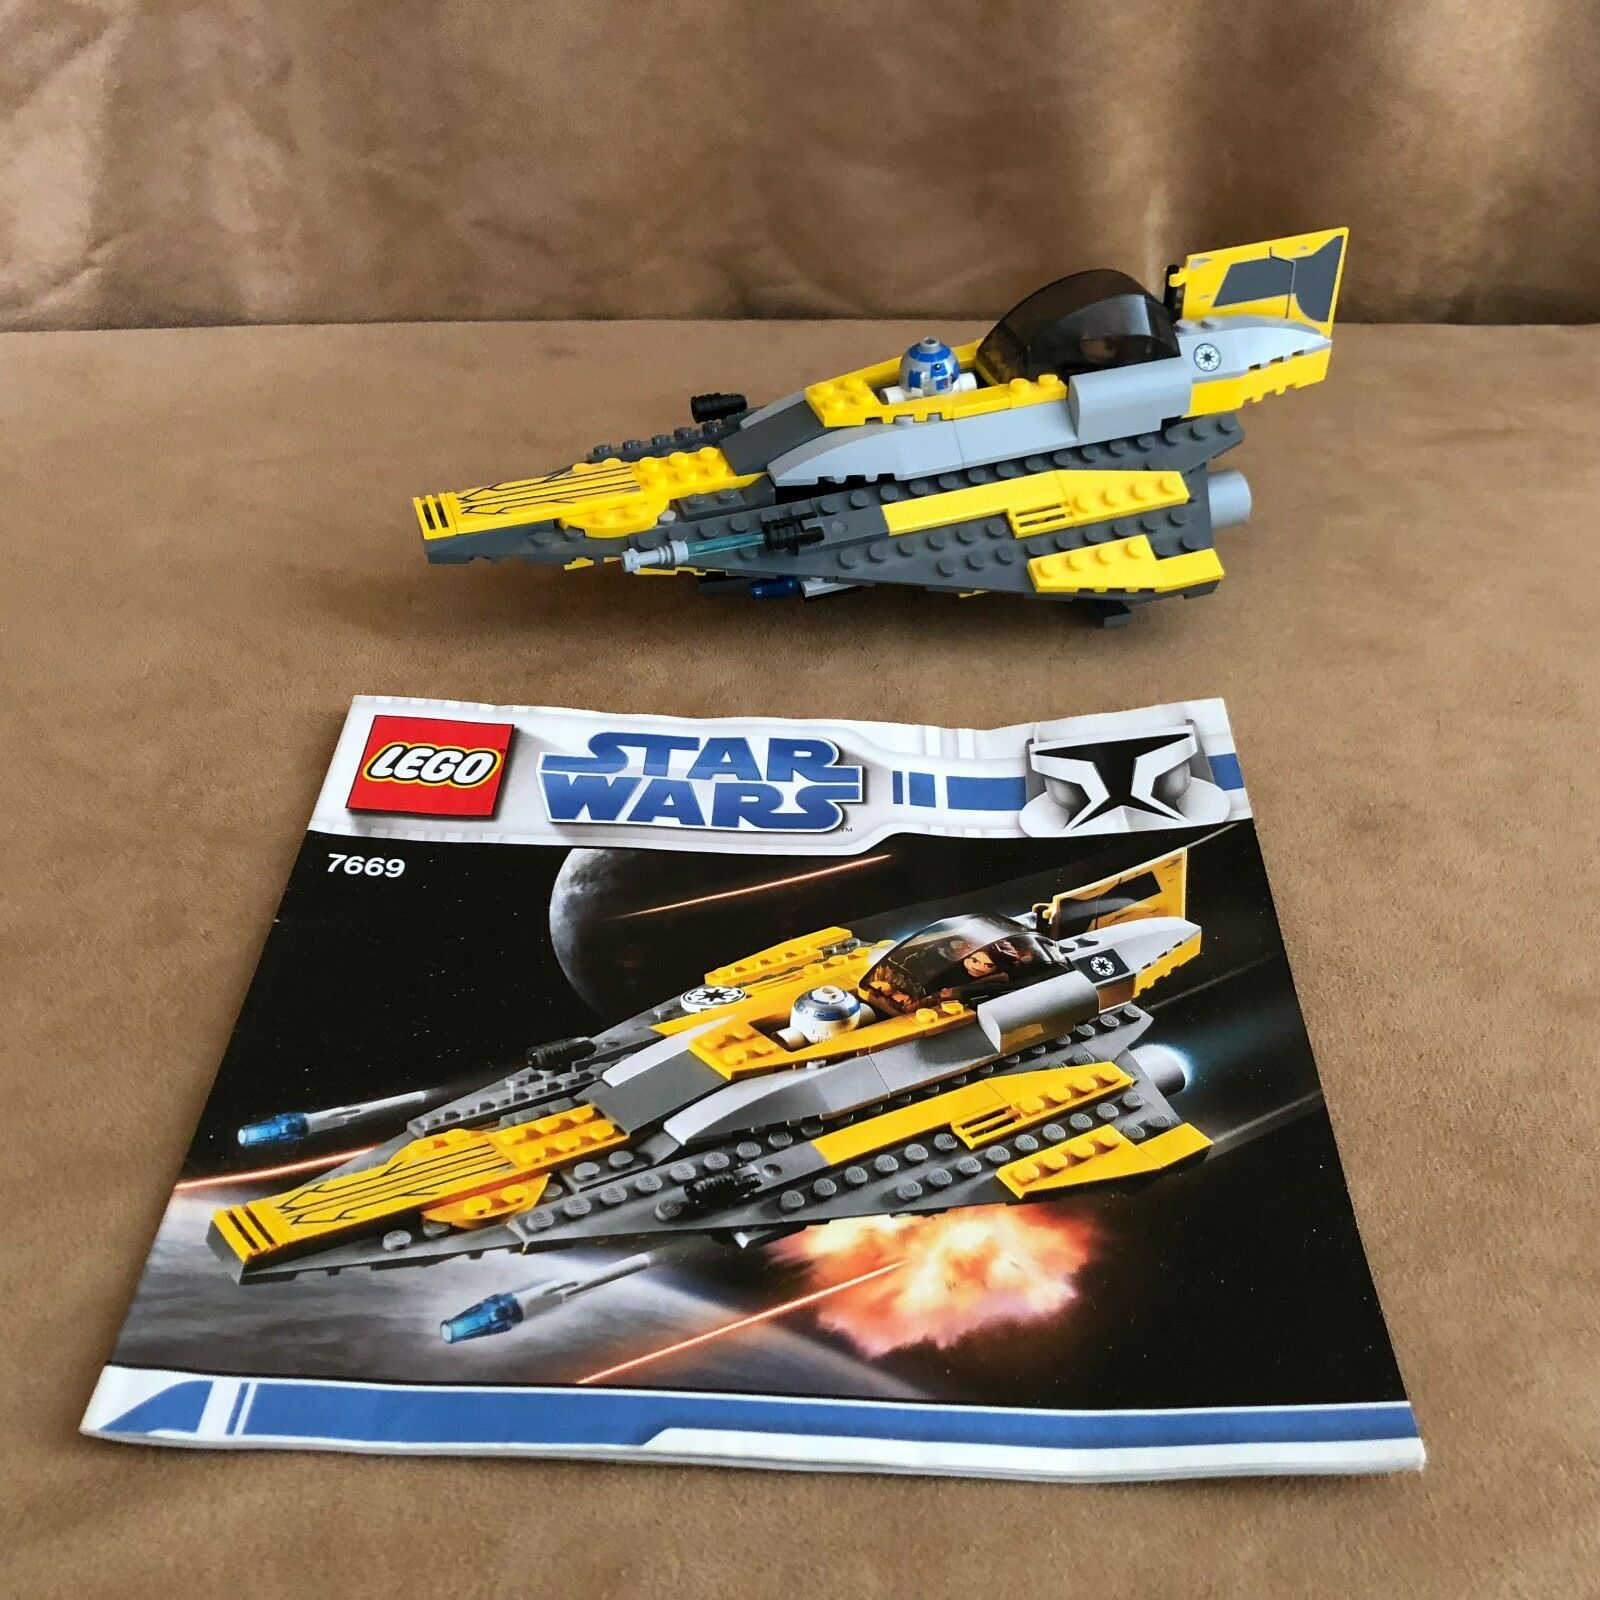 7669 Lego Star Wars Complete The Clone Wars Anakin's Jedi Starfighter book